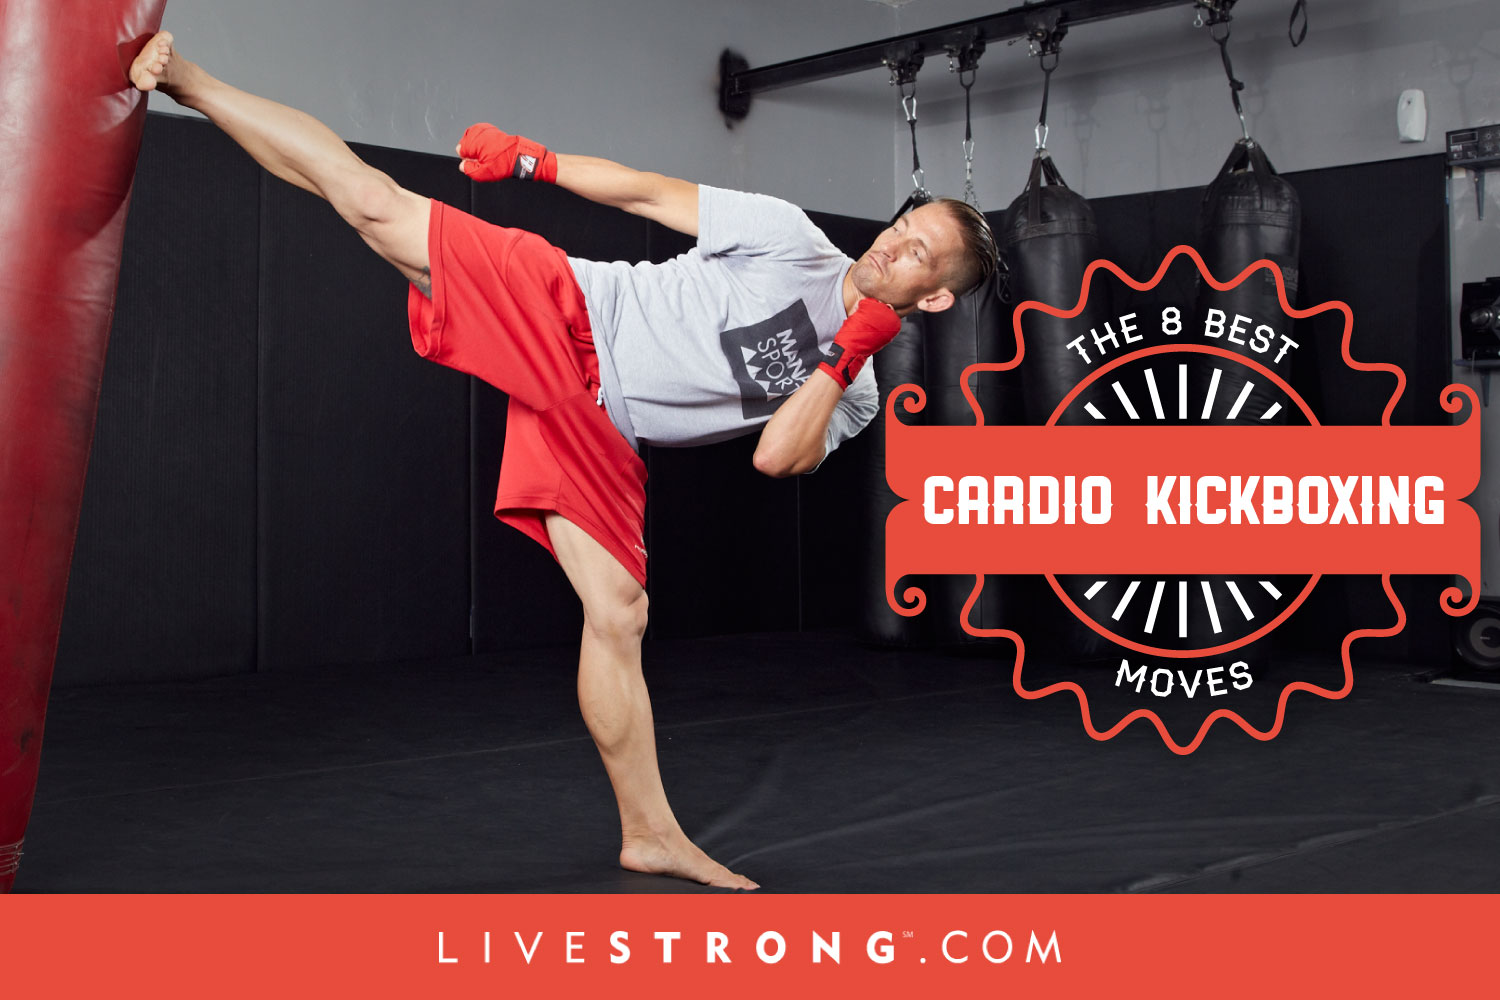 The 8 Best Cardio Kickboxing Moves | LIVESTRONG.COM